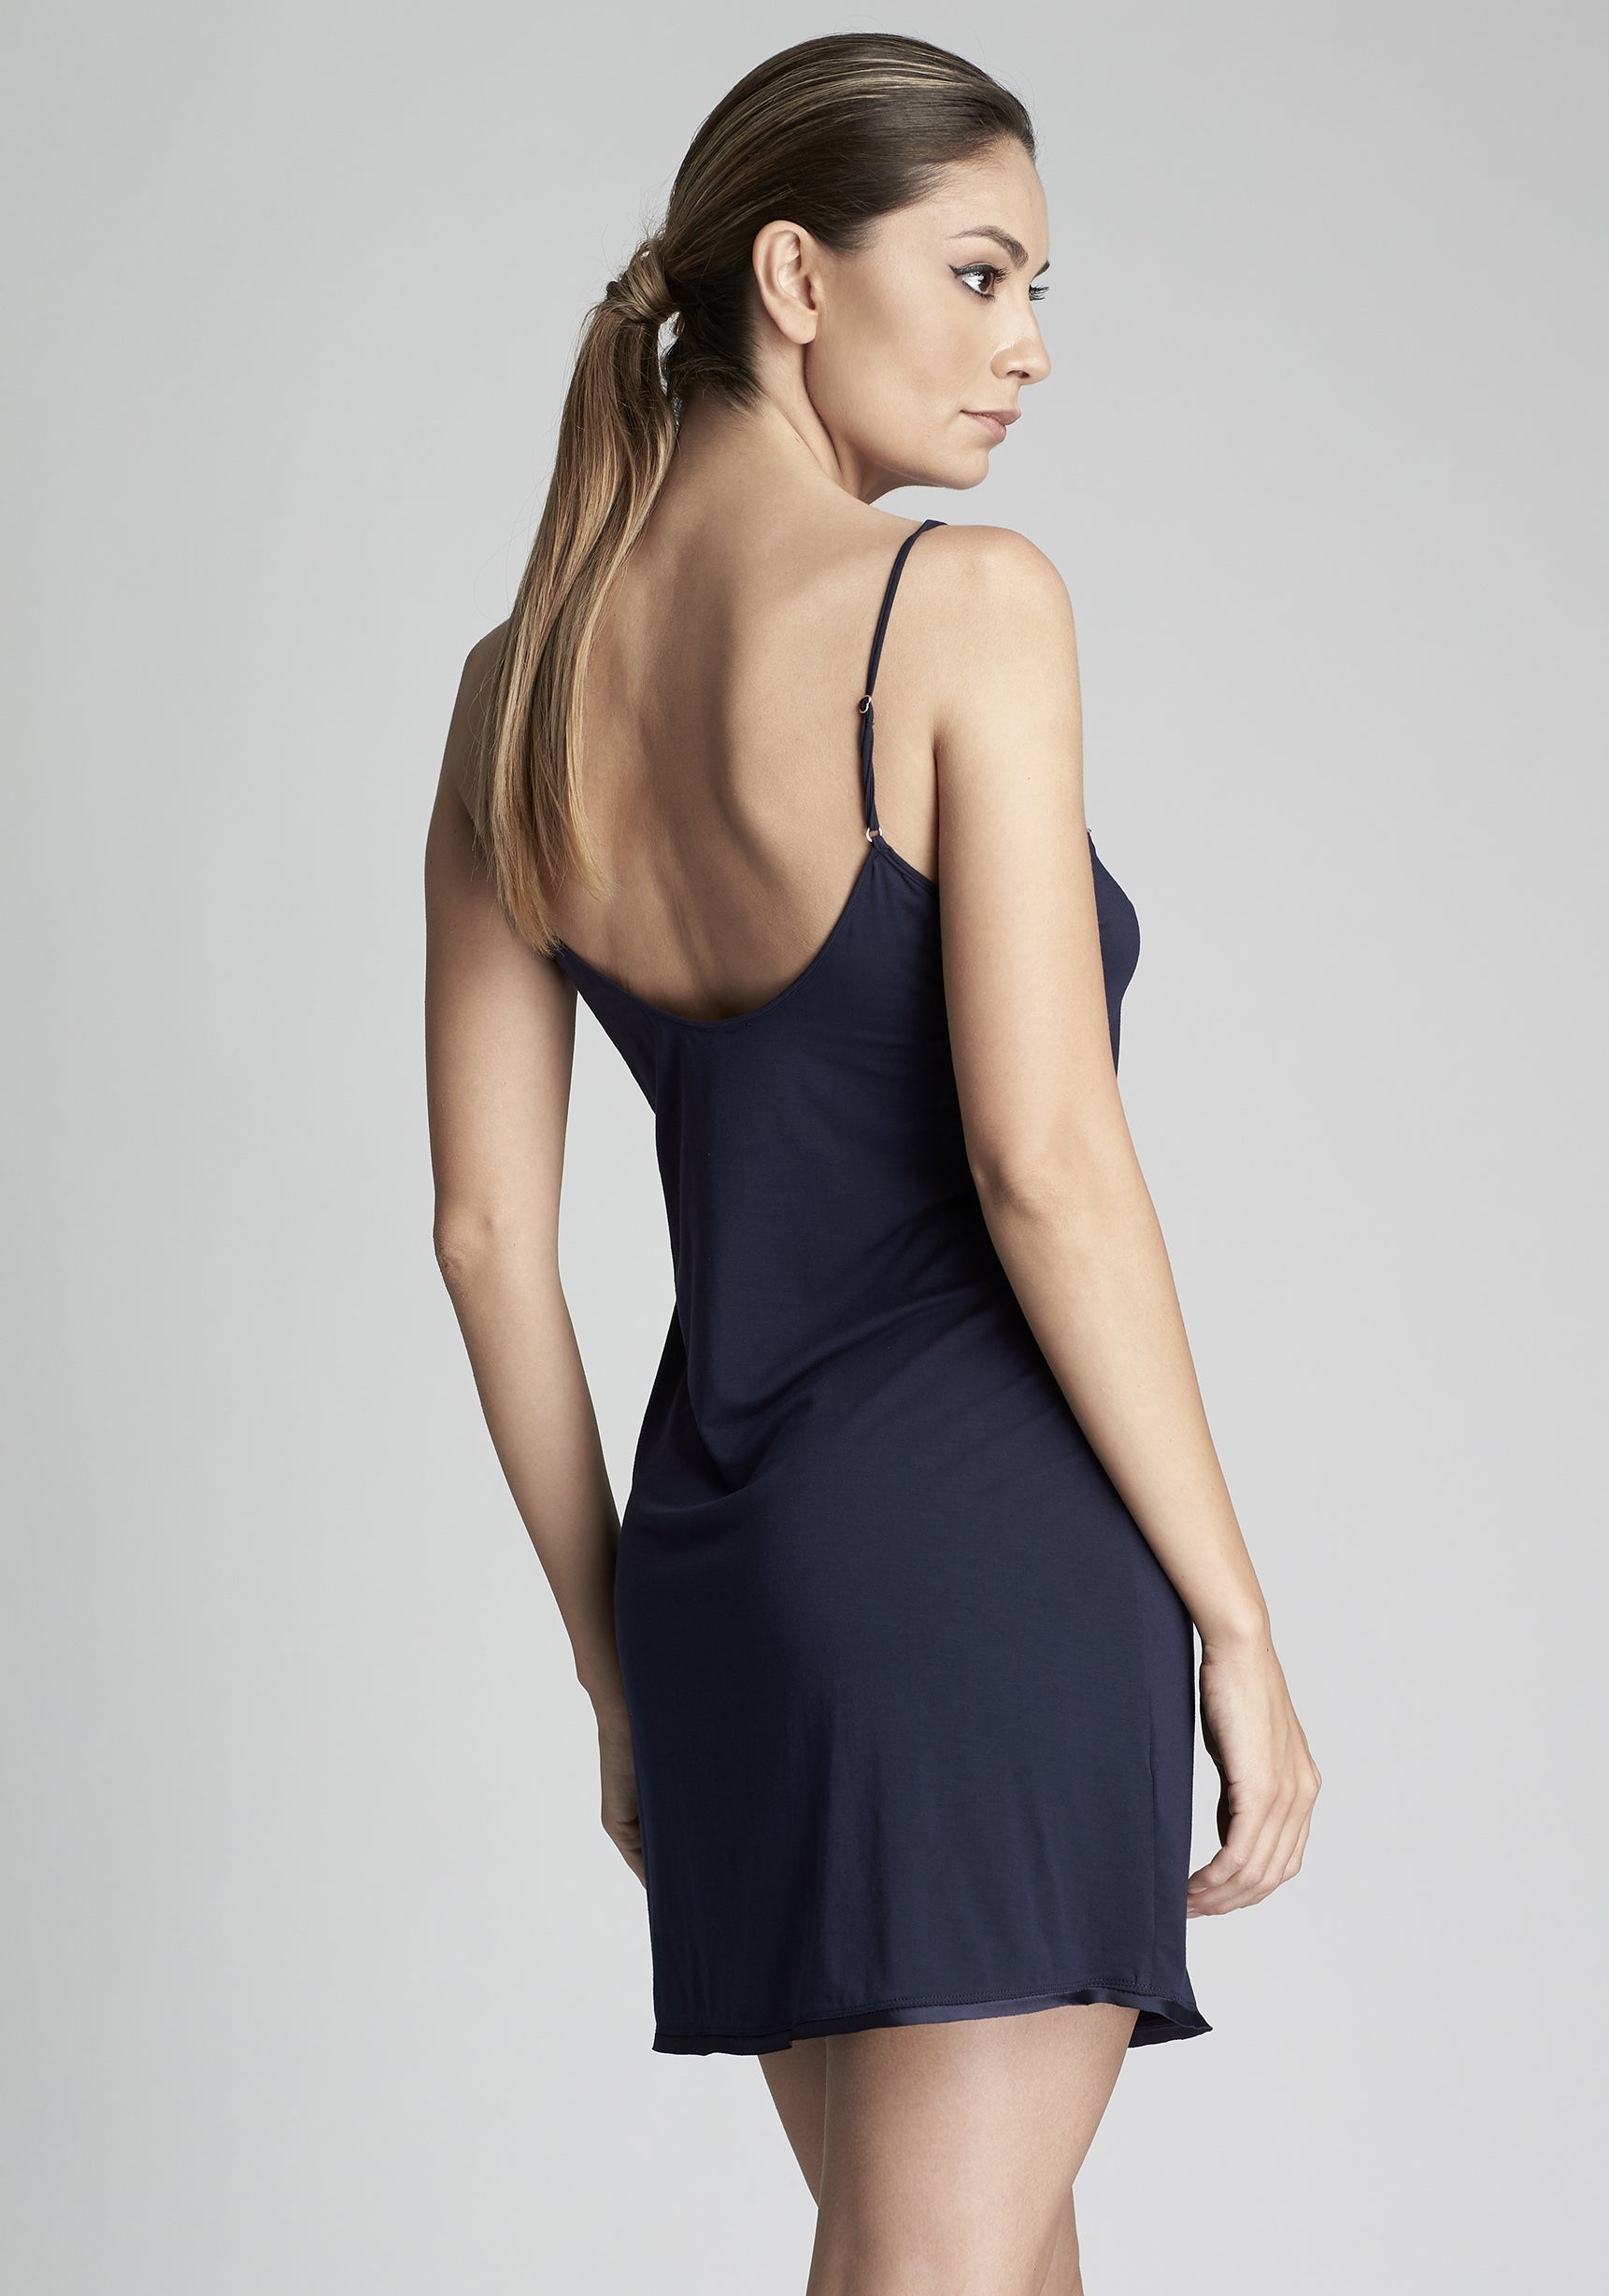 Isolde Midi Chemise in Navy Blue - I.D. Sarrieri